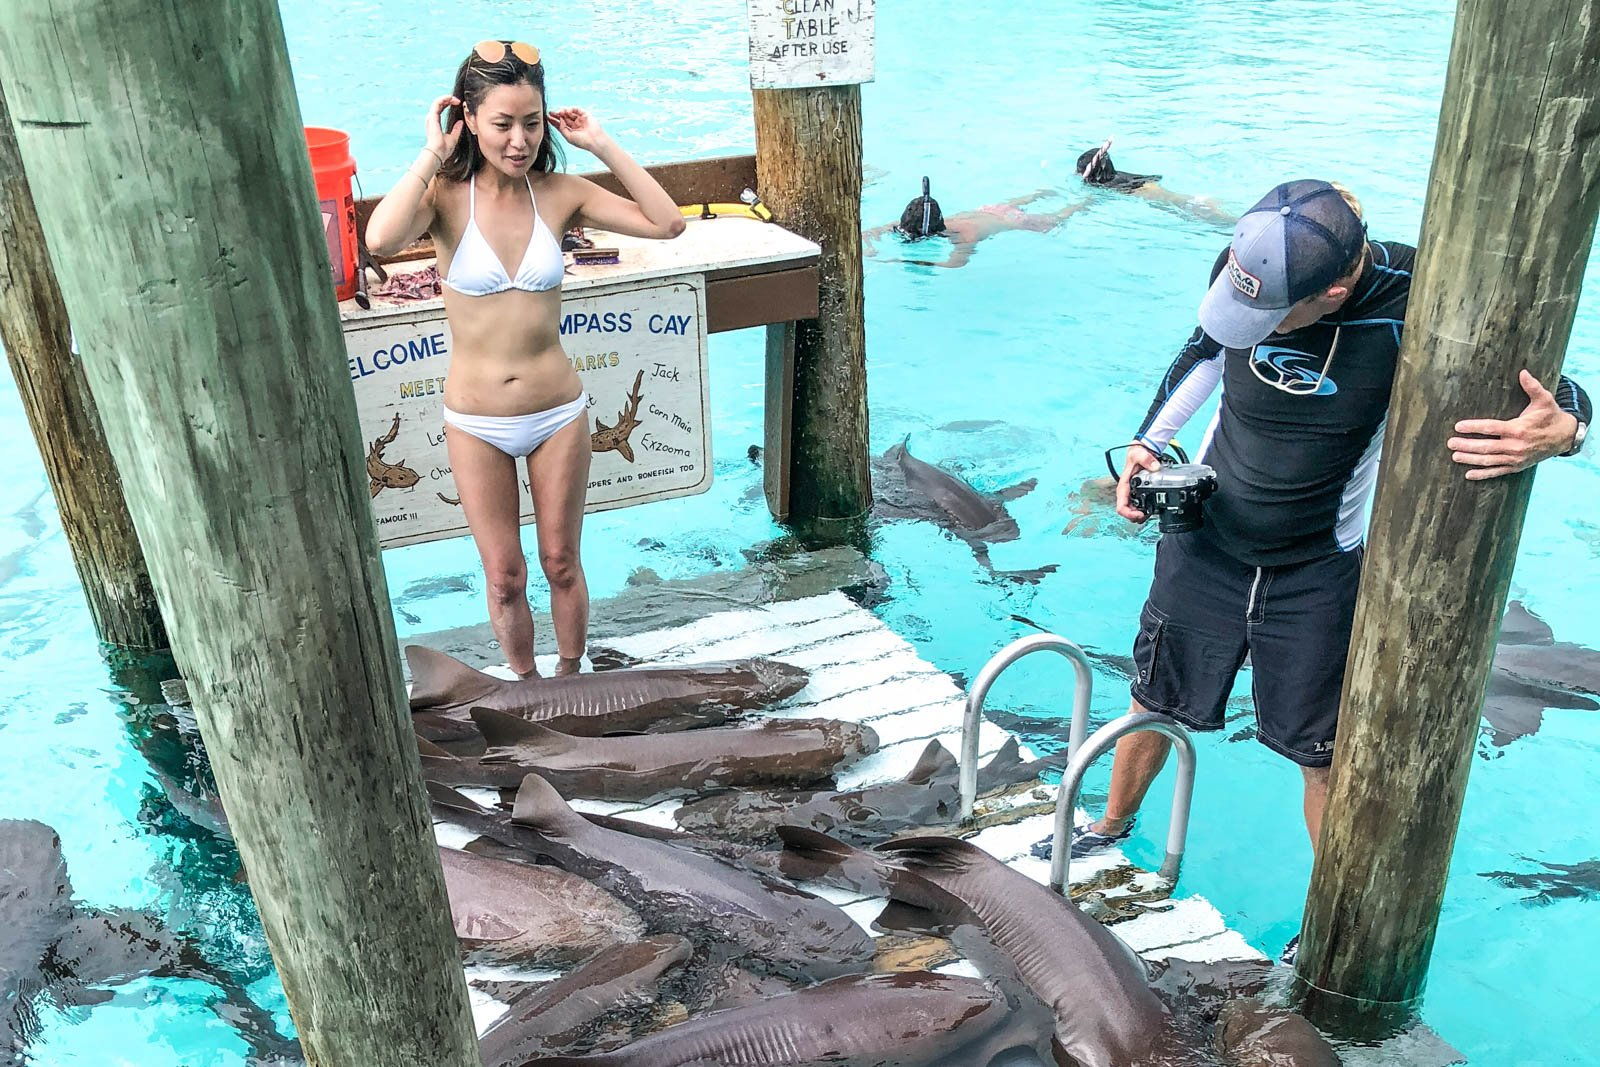 The Compass Cay Bahamas sharks are a crowd favorite among Bahamas day trip-goers.